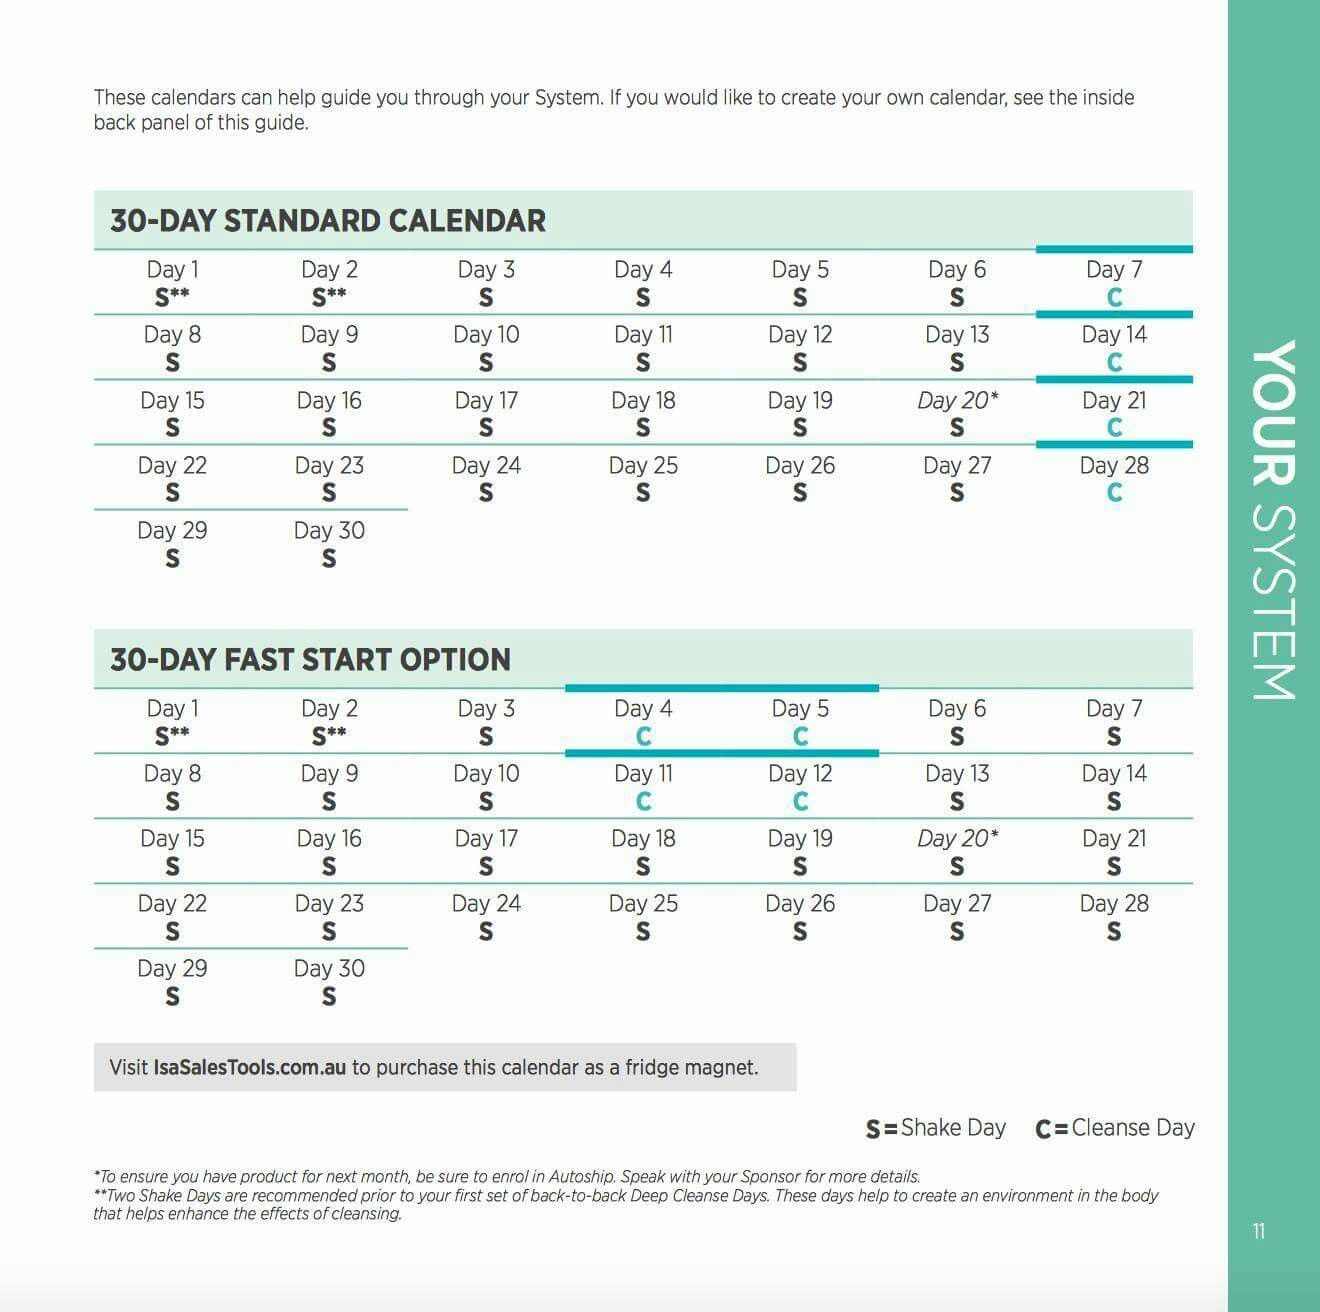 30 Day Calendar | Isagenix, Create Your Own Calendar intended for Isagenix 30 Day Printabel Schedule